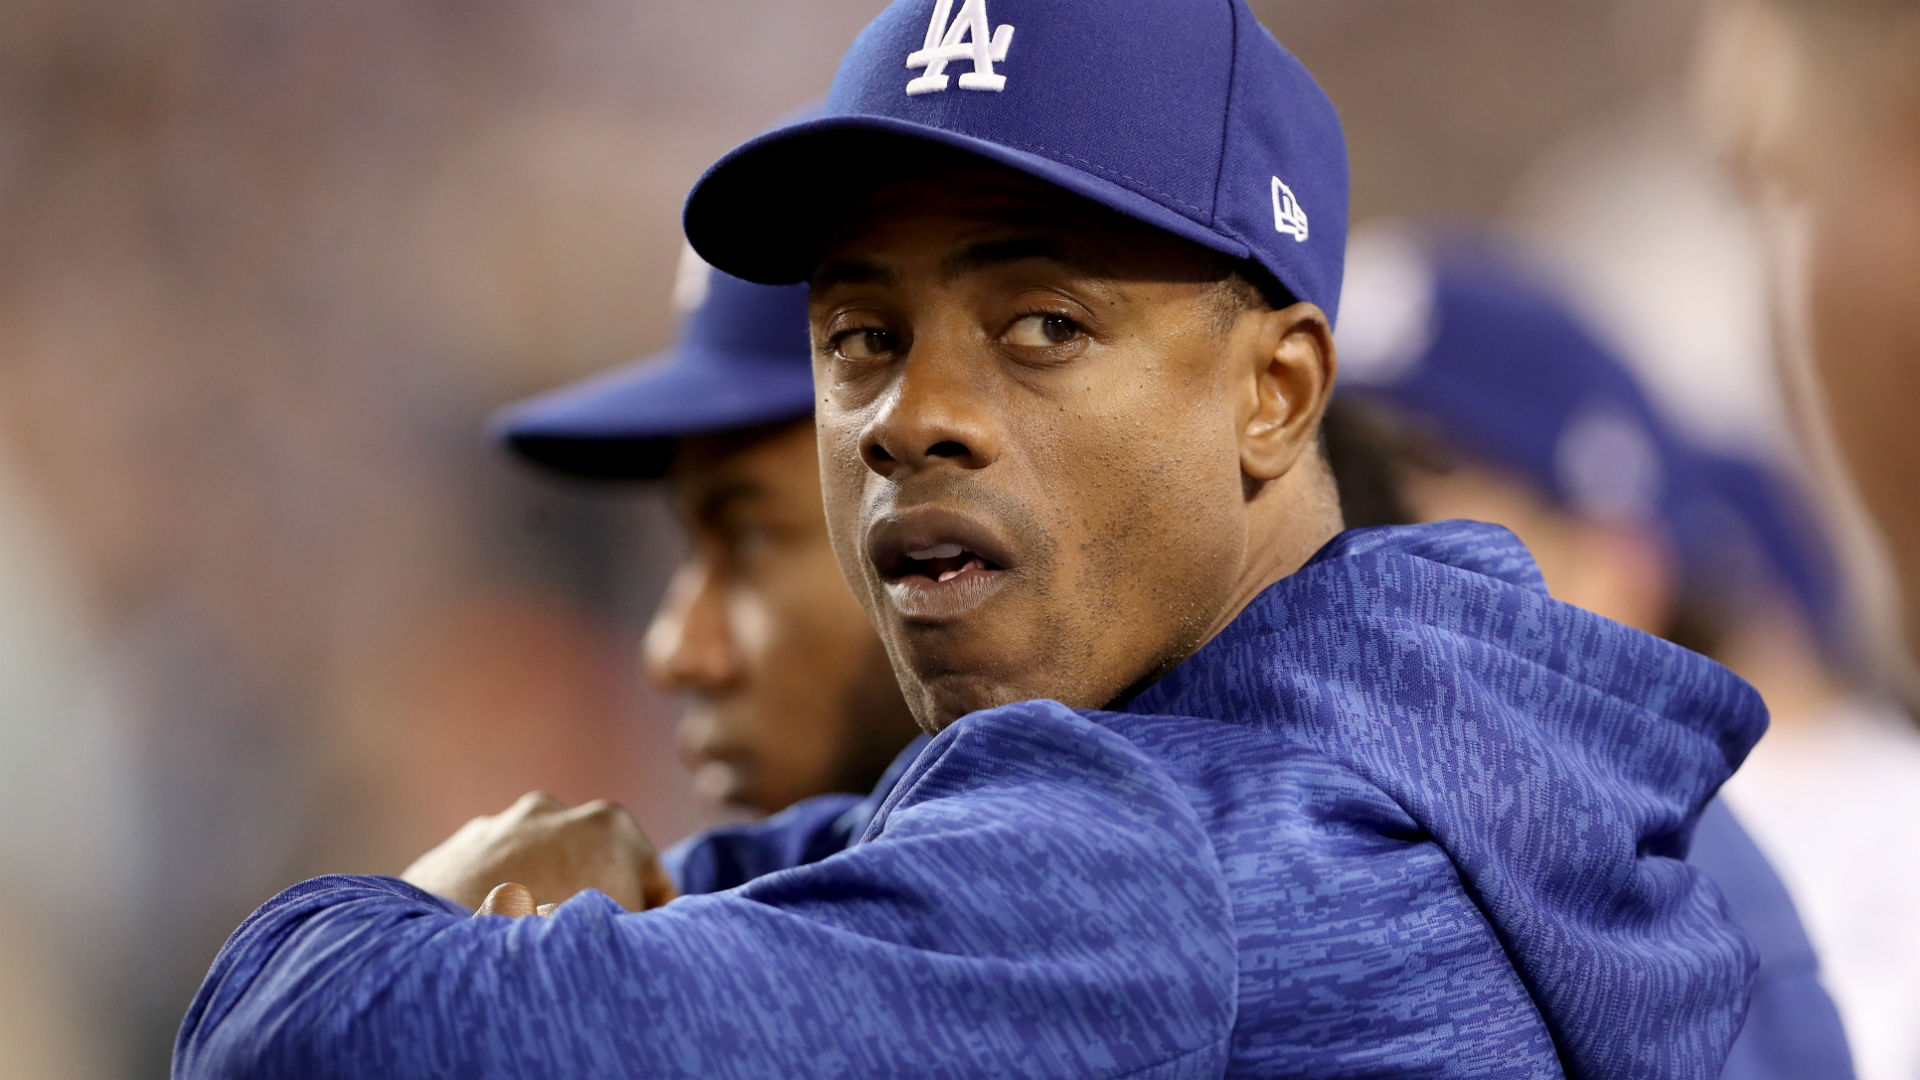 MLB free agents 2018: Curtis Granderson, 36, plans on playing next year, report says